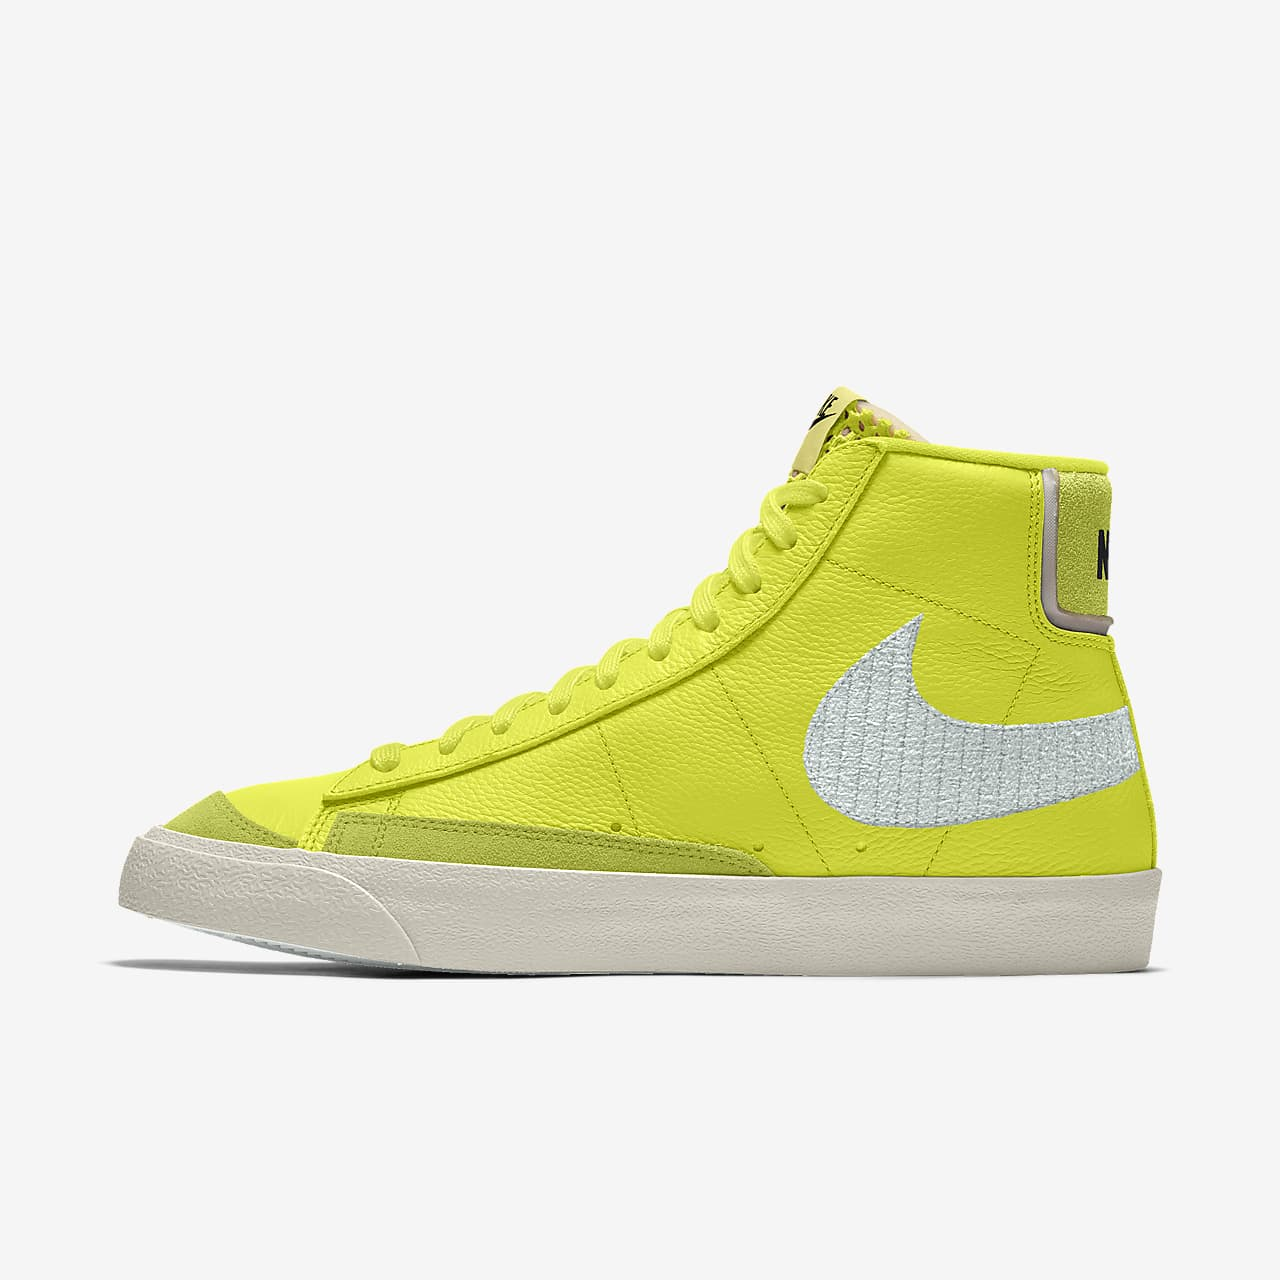 Chaussure personnalisable Nike Blazer Mid '77 Vintage By You